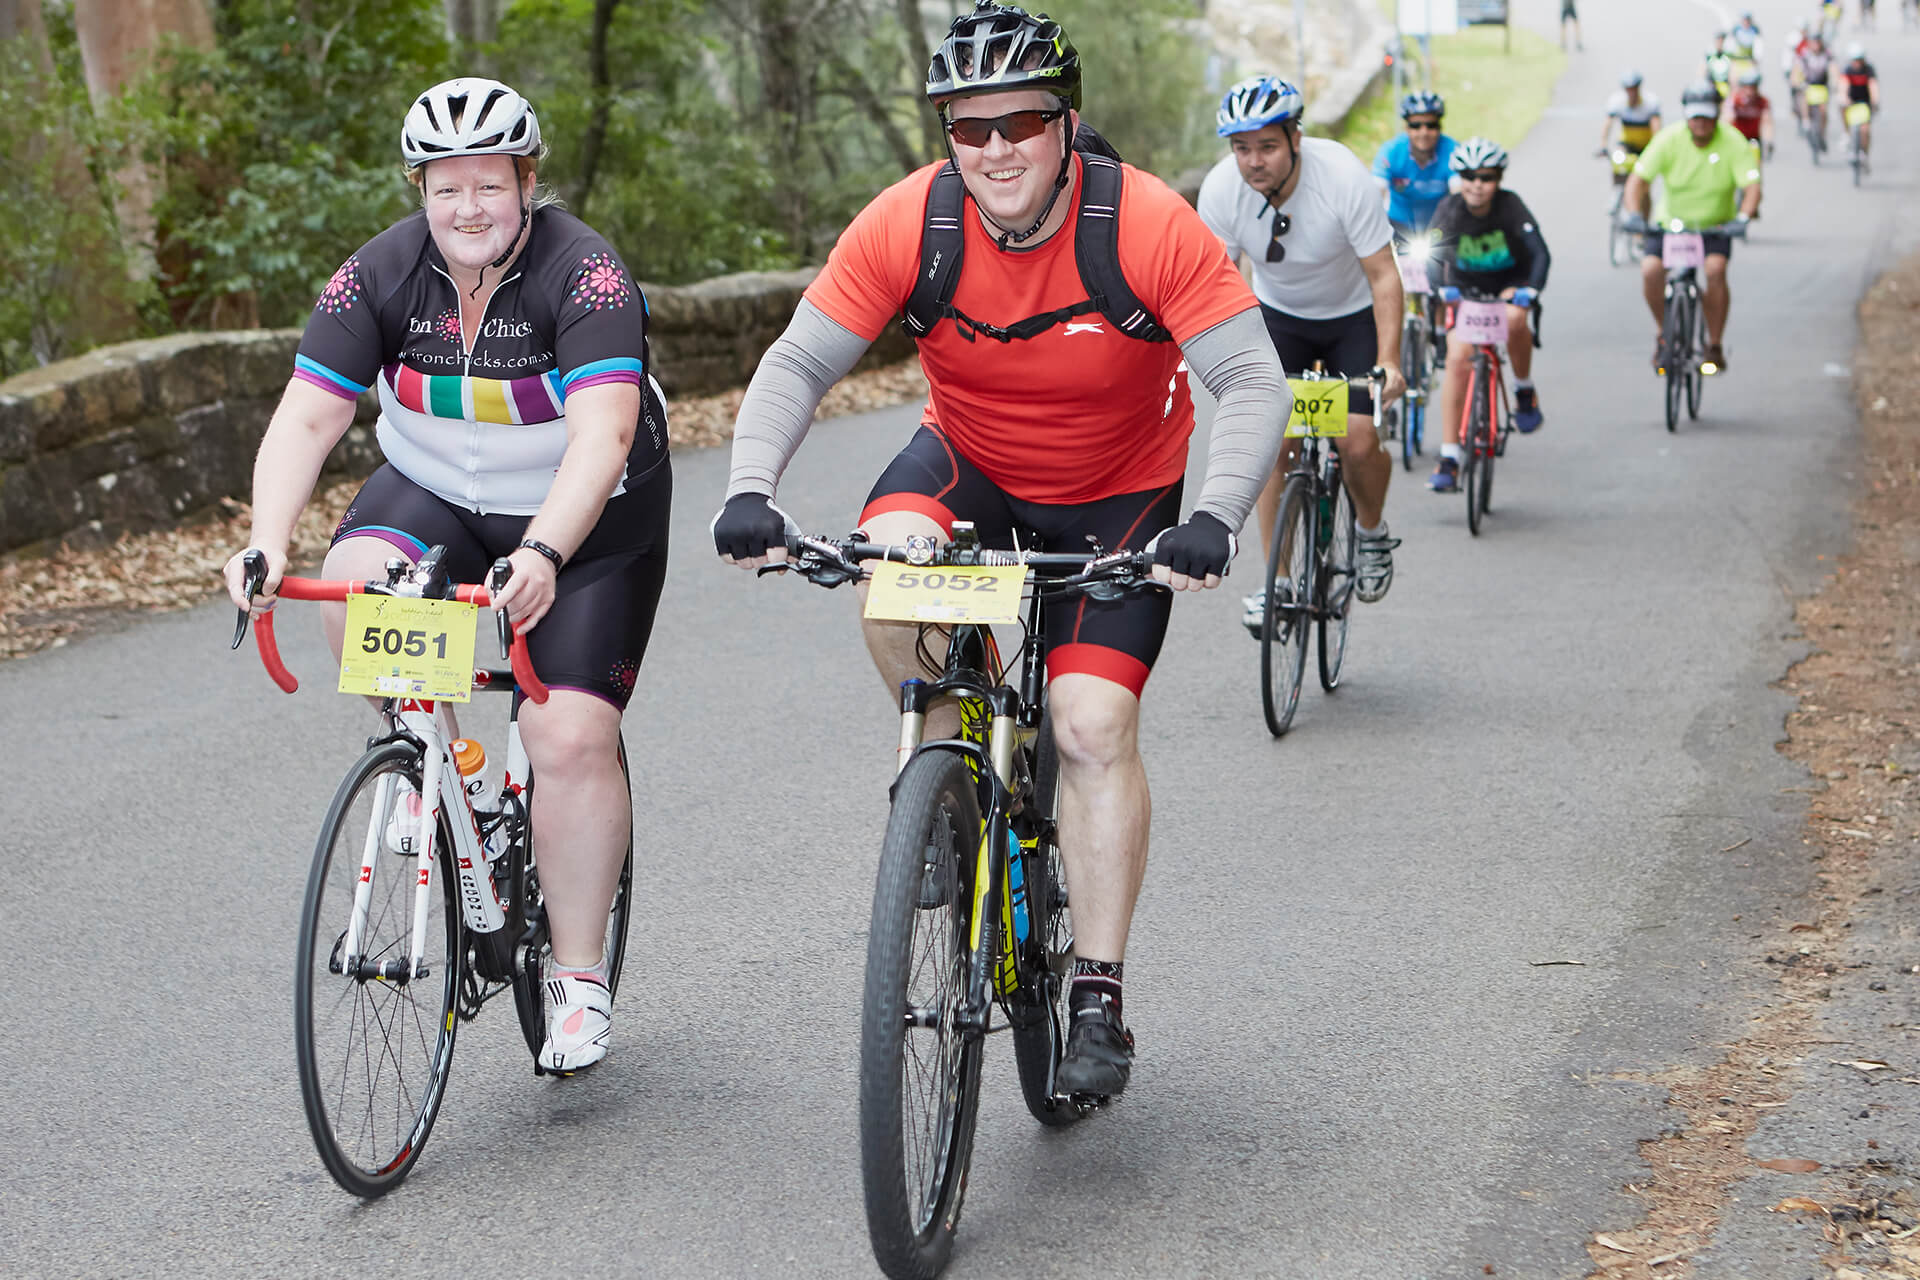 how to organise a charity cycle ride